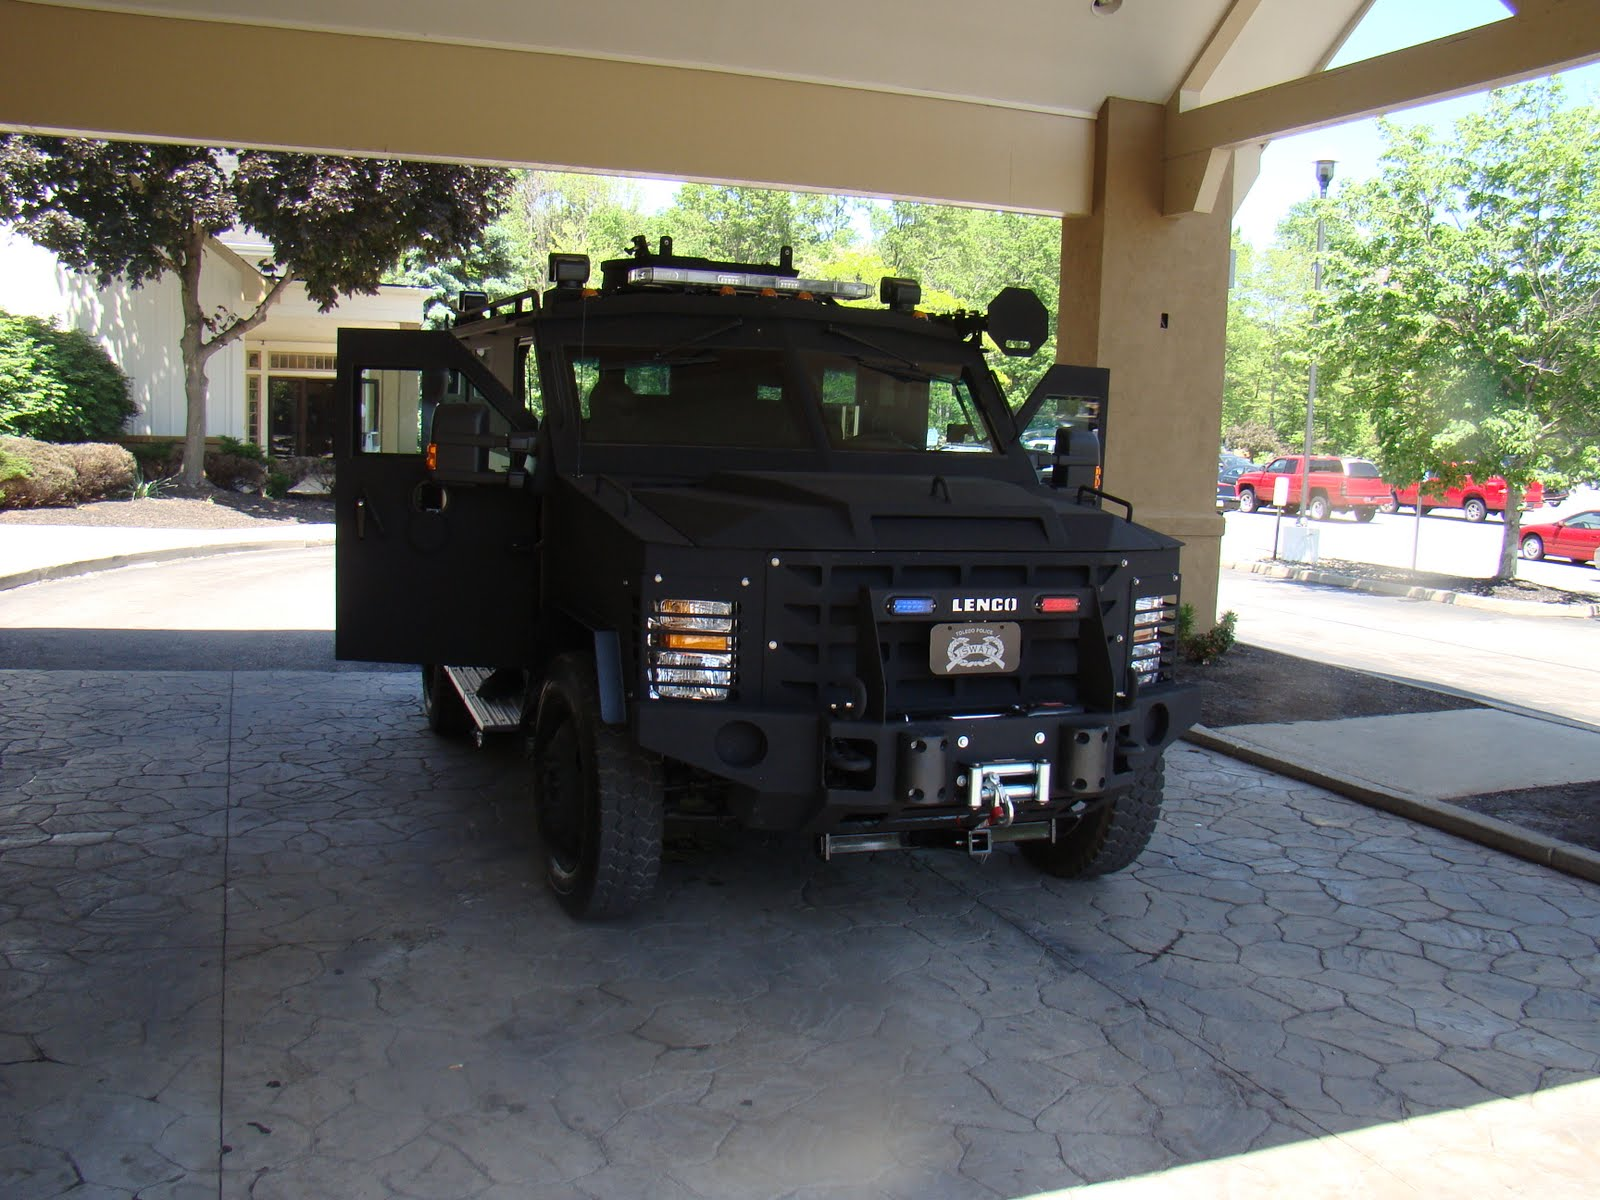 I Guess The Police Heard That We Were Planning A Party For Moms 70th Birthday And Thought Might Get Kind Of Wild They Had SWAT Vehicle